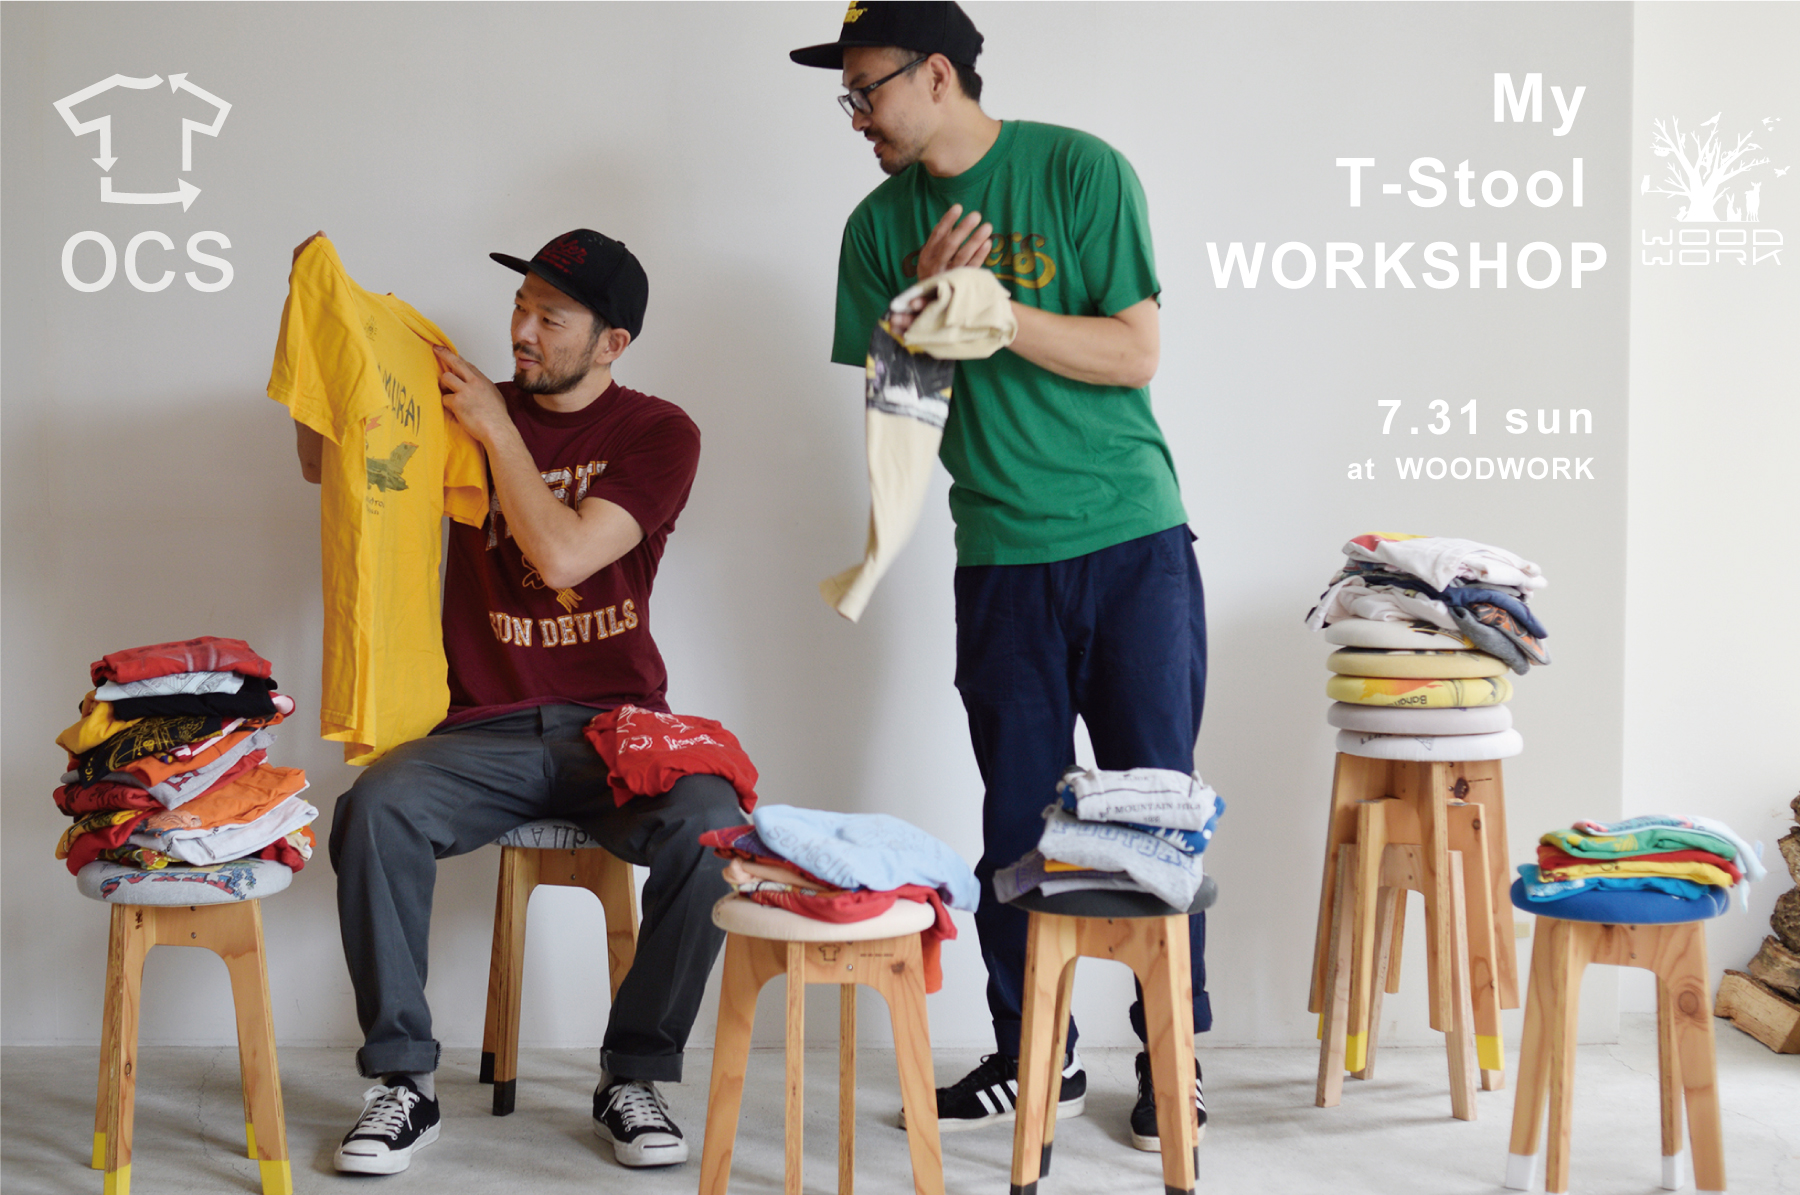 My T-Stool workshop old clothes stool 古着 Tシャツ スツール ワークショップ